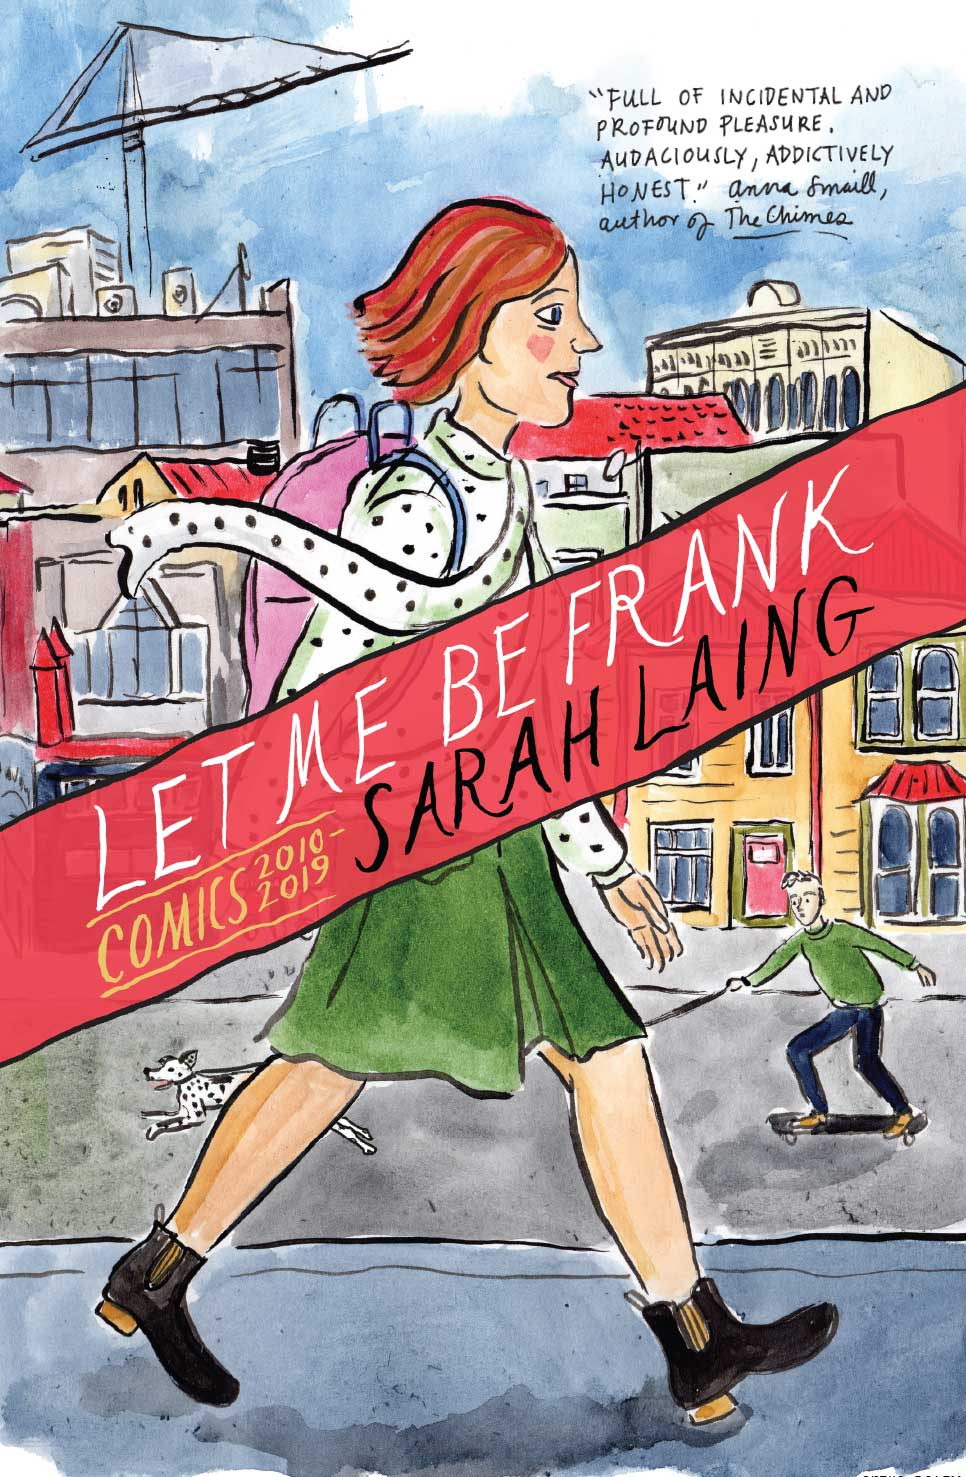 let-me-be-frank-COVER-1.jpg